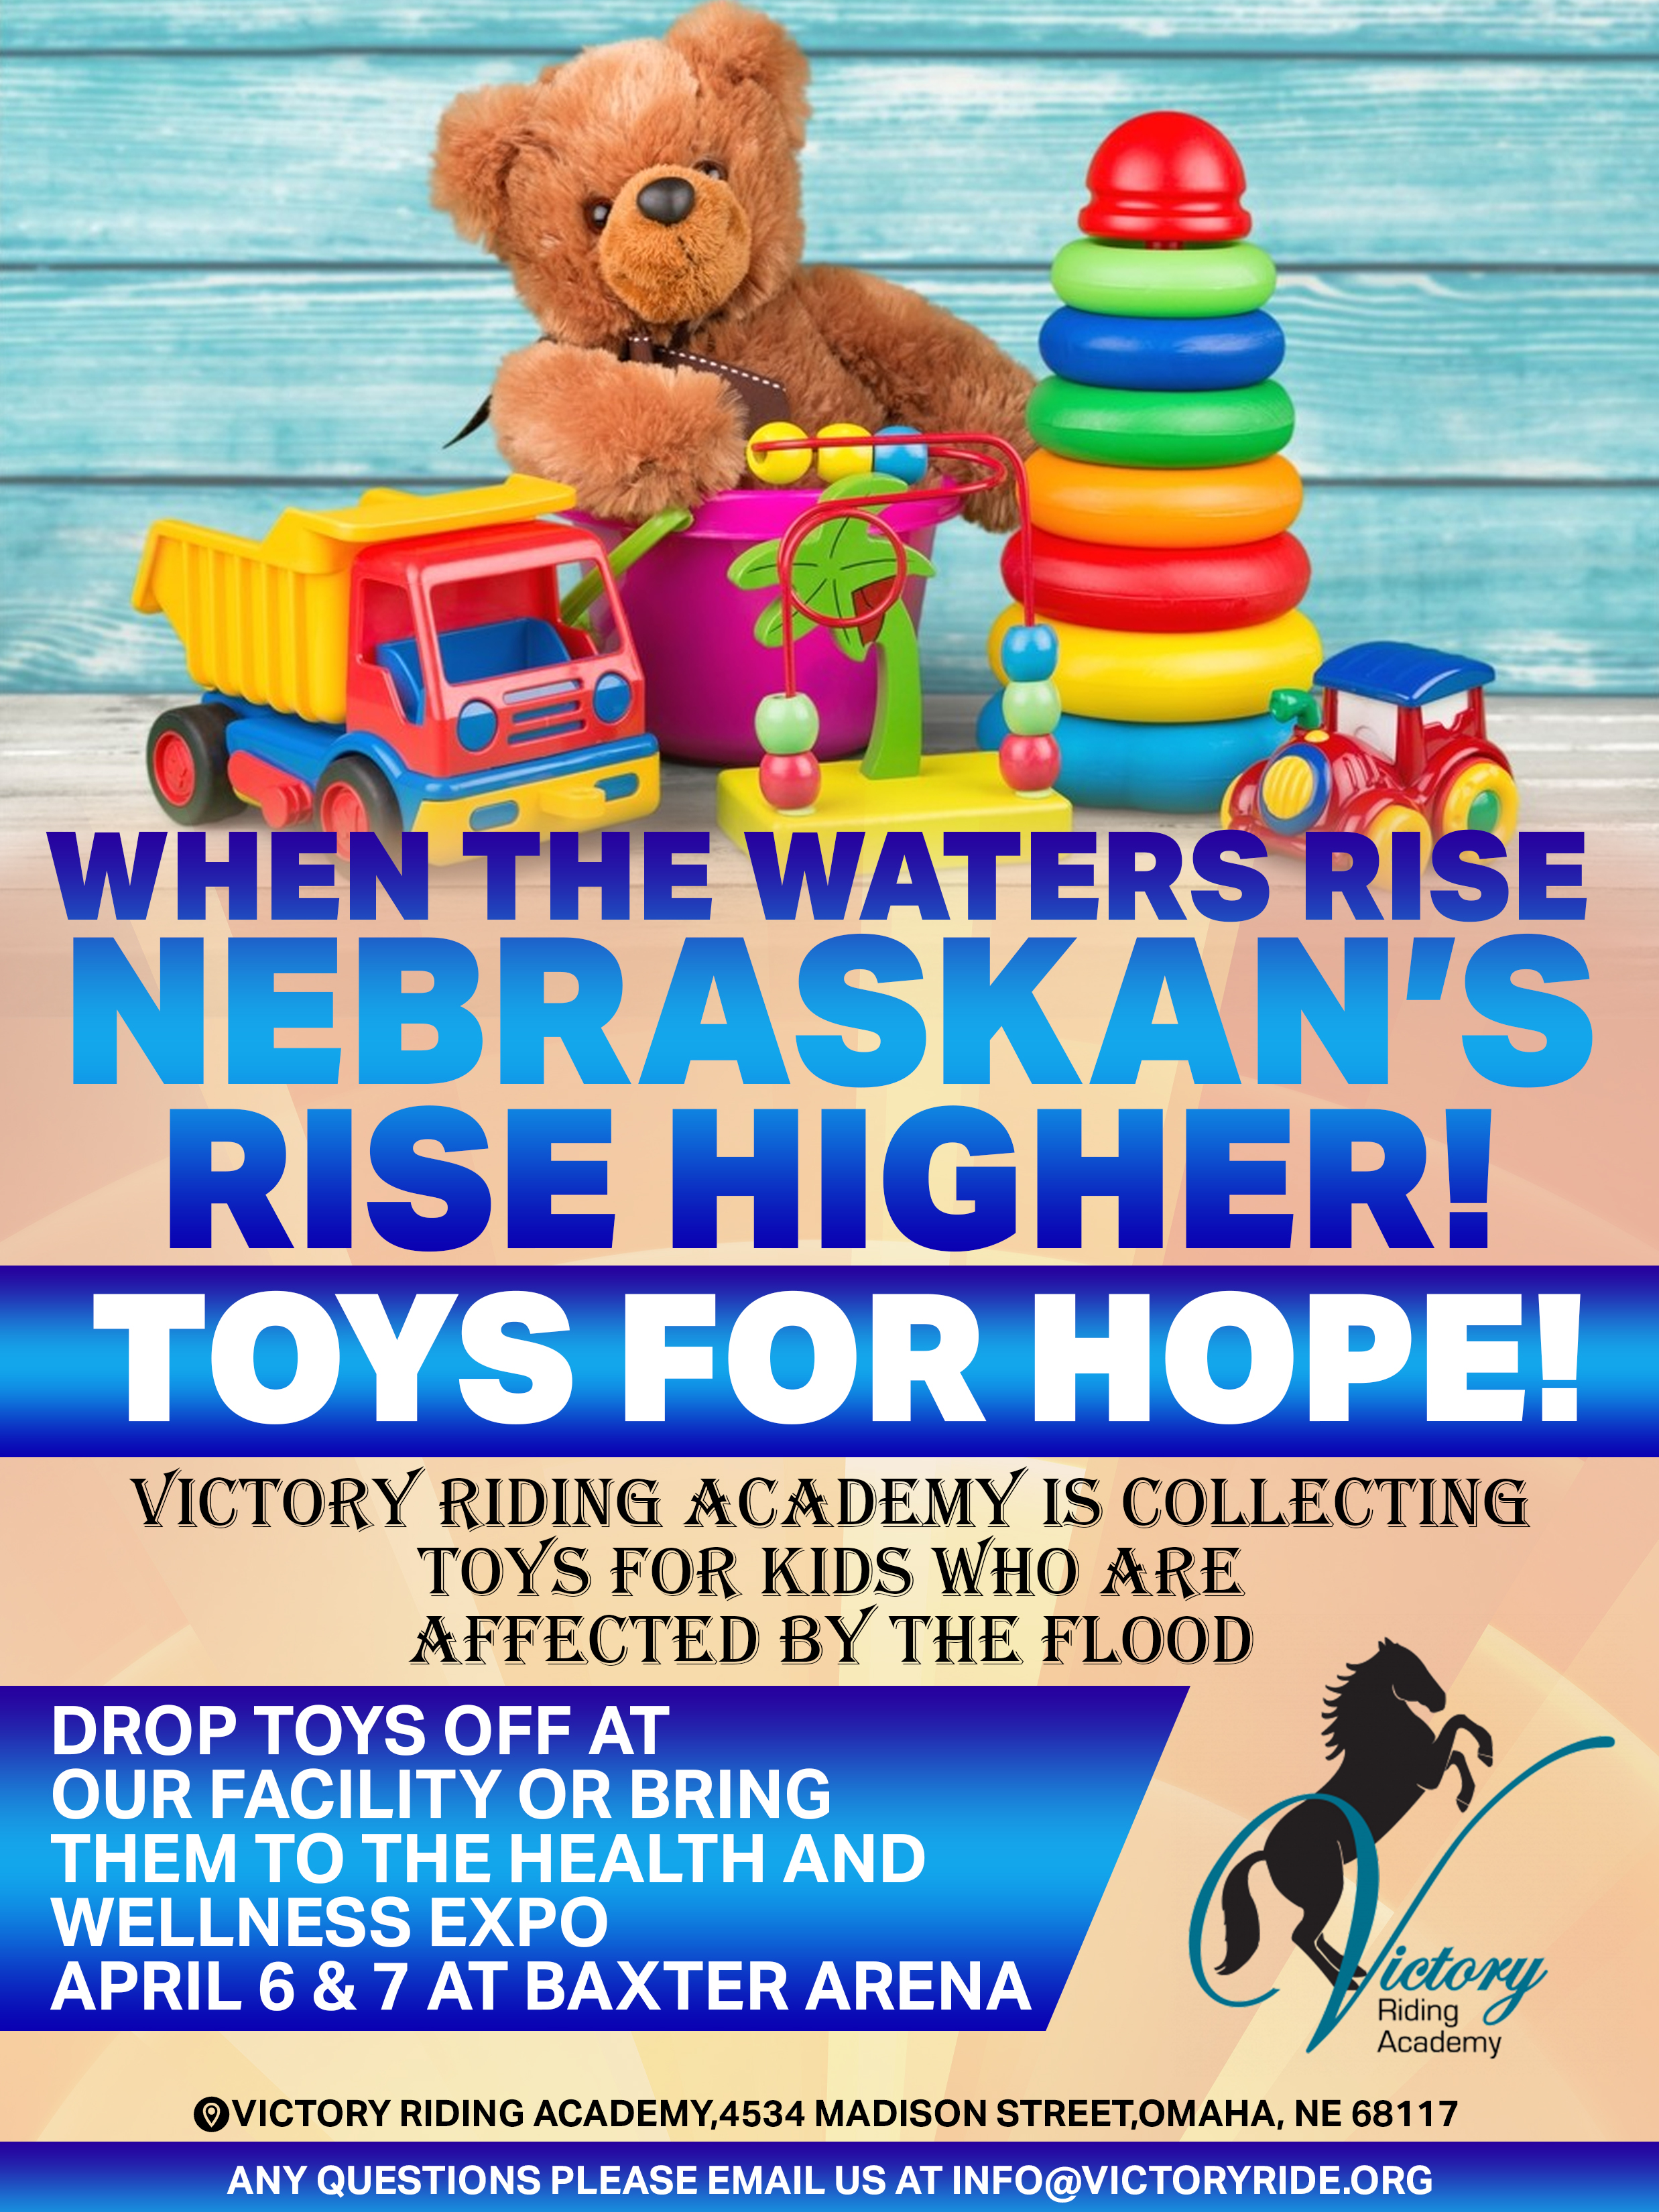 Toy Drive for kids affected by the flood